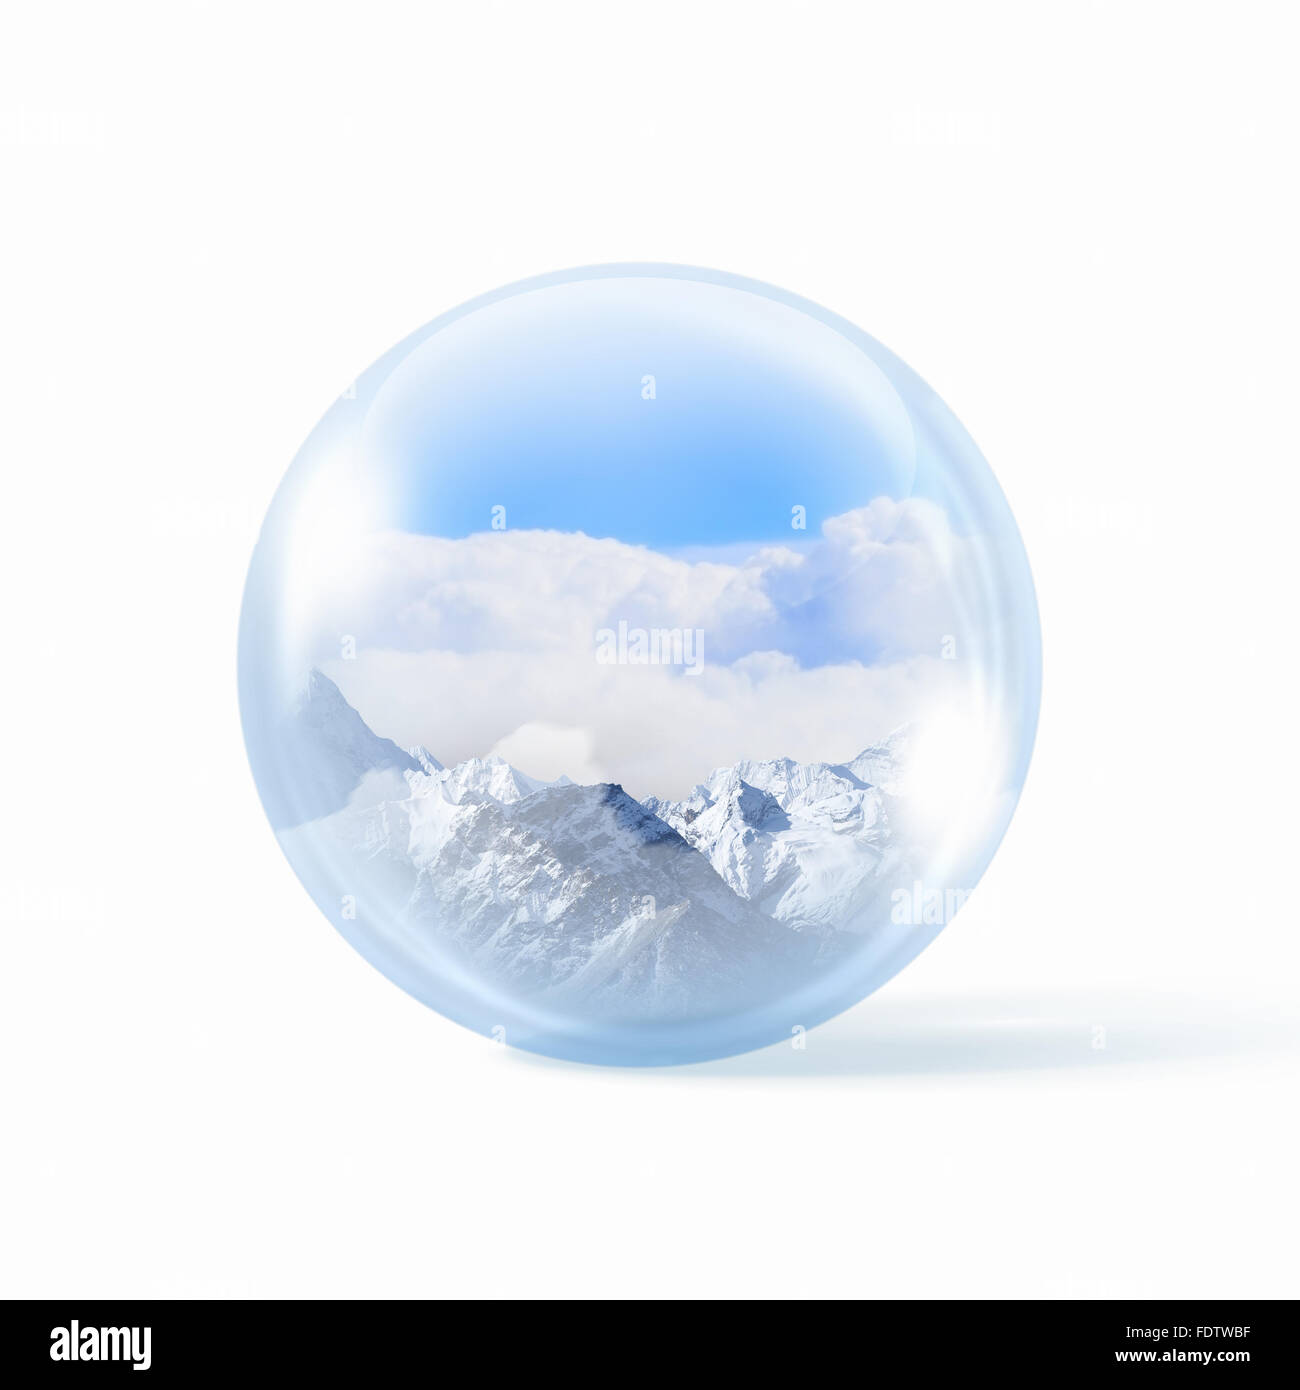 A glass transparent ball with snow high mountains inside it. - Stock Image